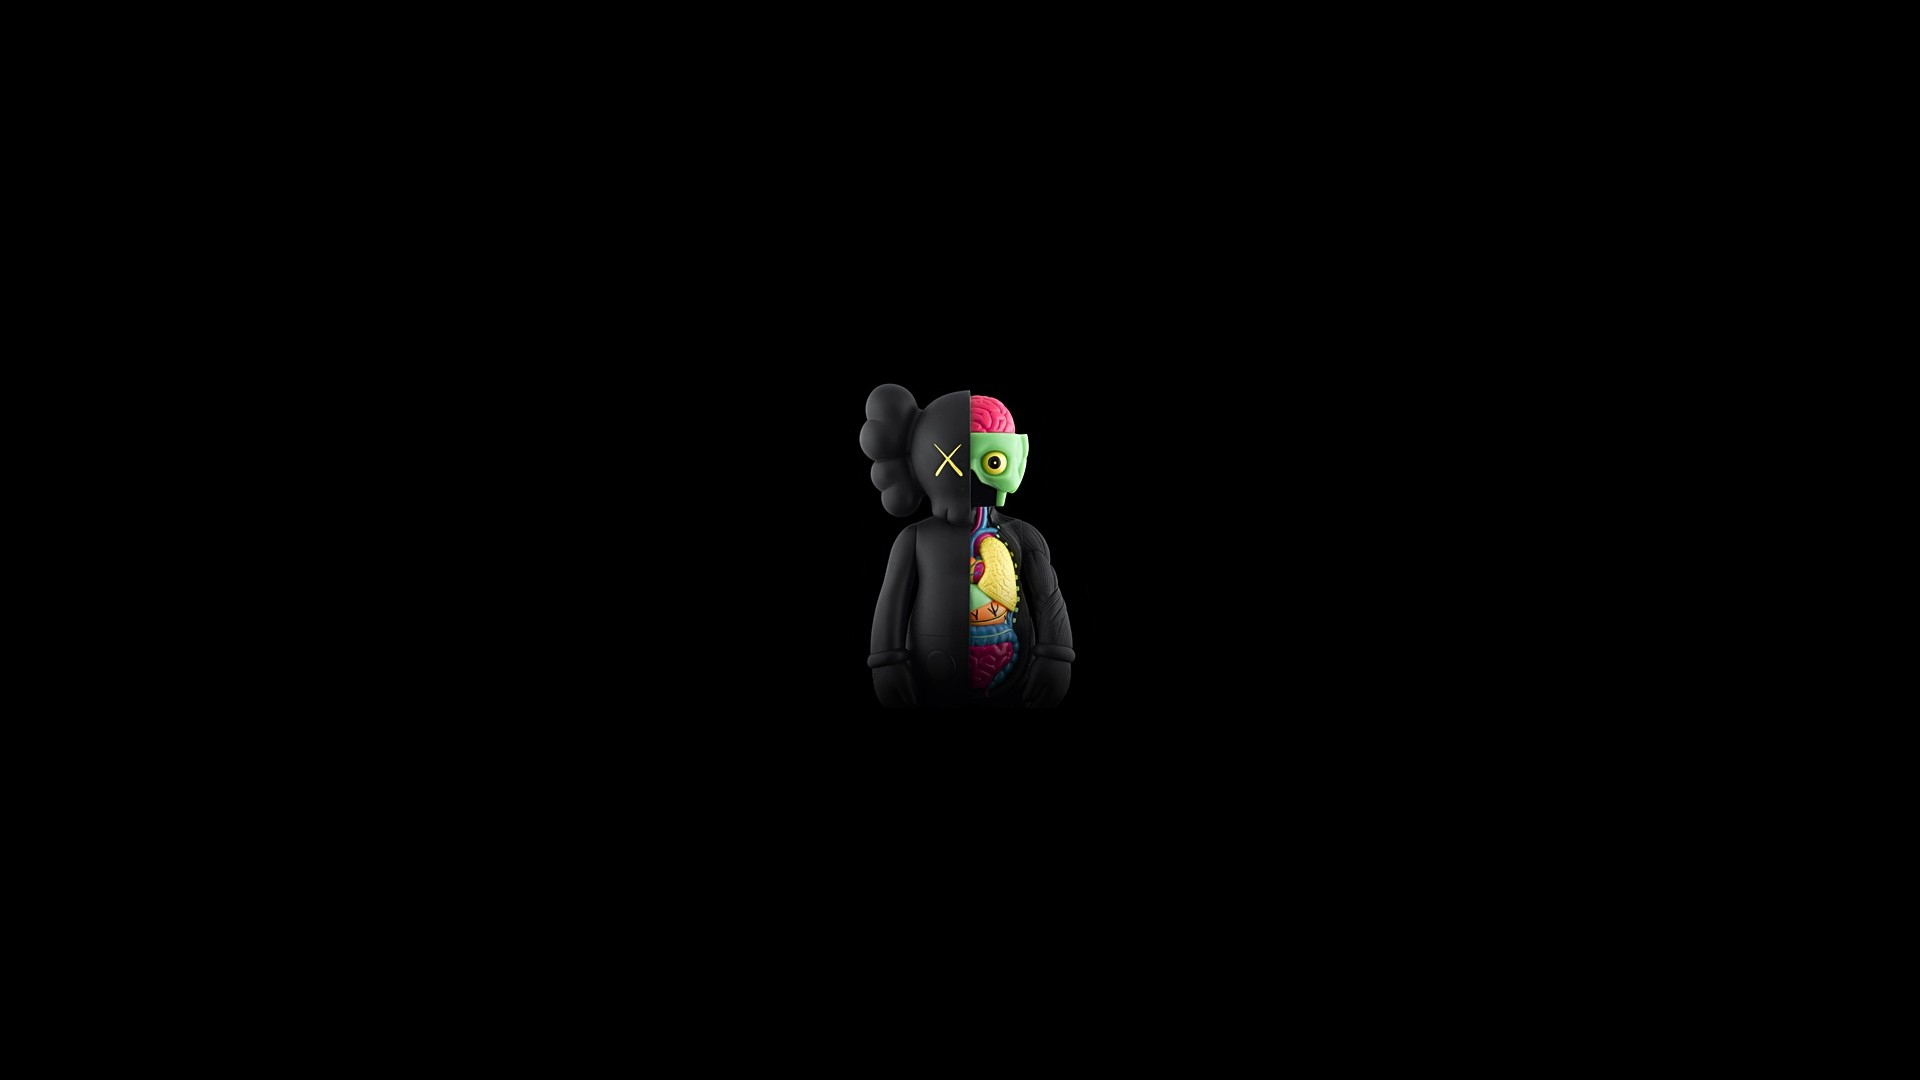 Res: 1920x1080, Wallpapers Kaws Bape 1600x1200 | #213239 #kaws